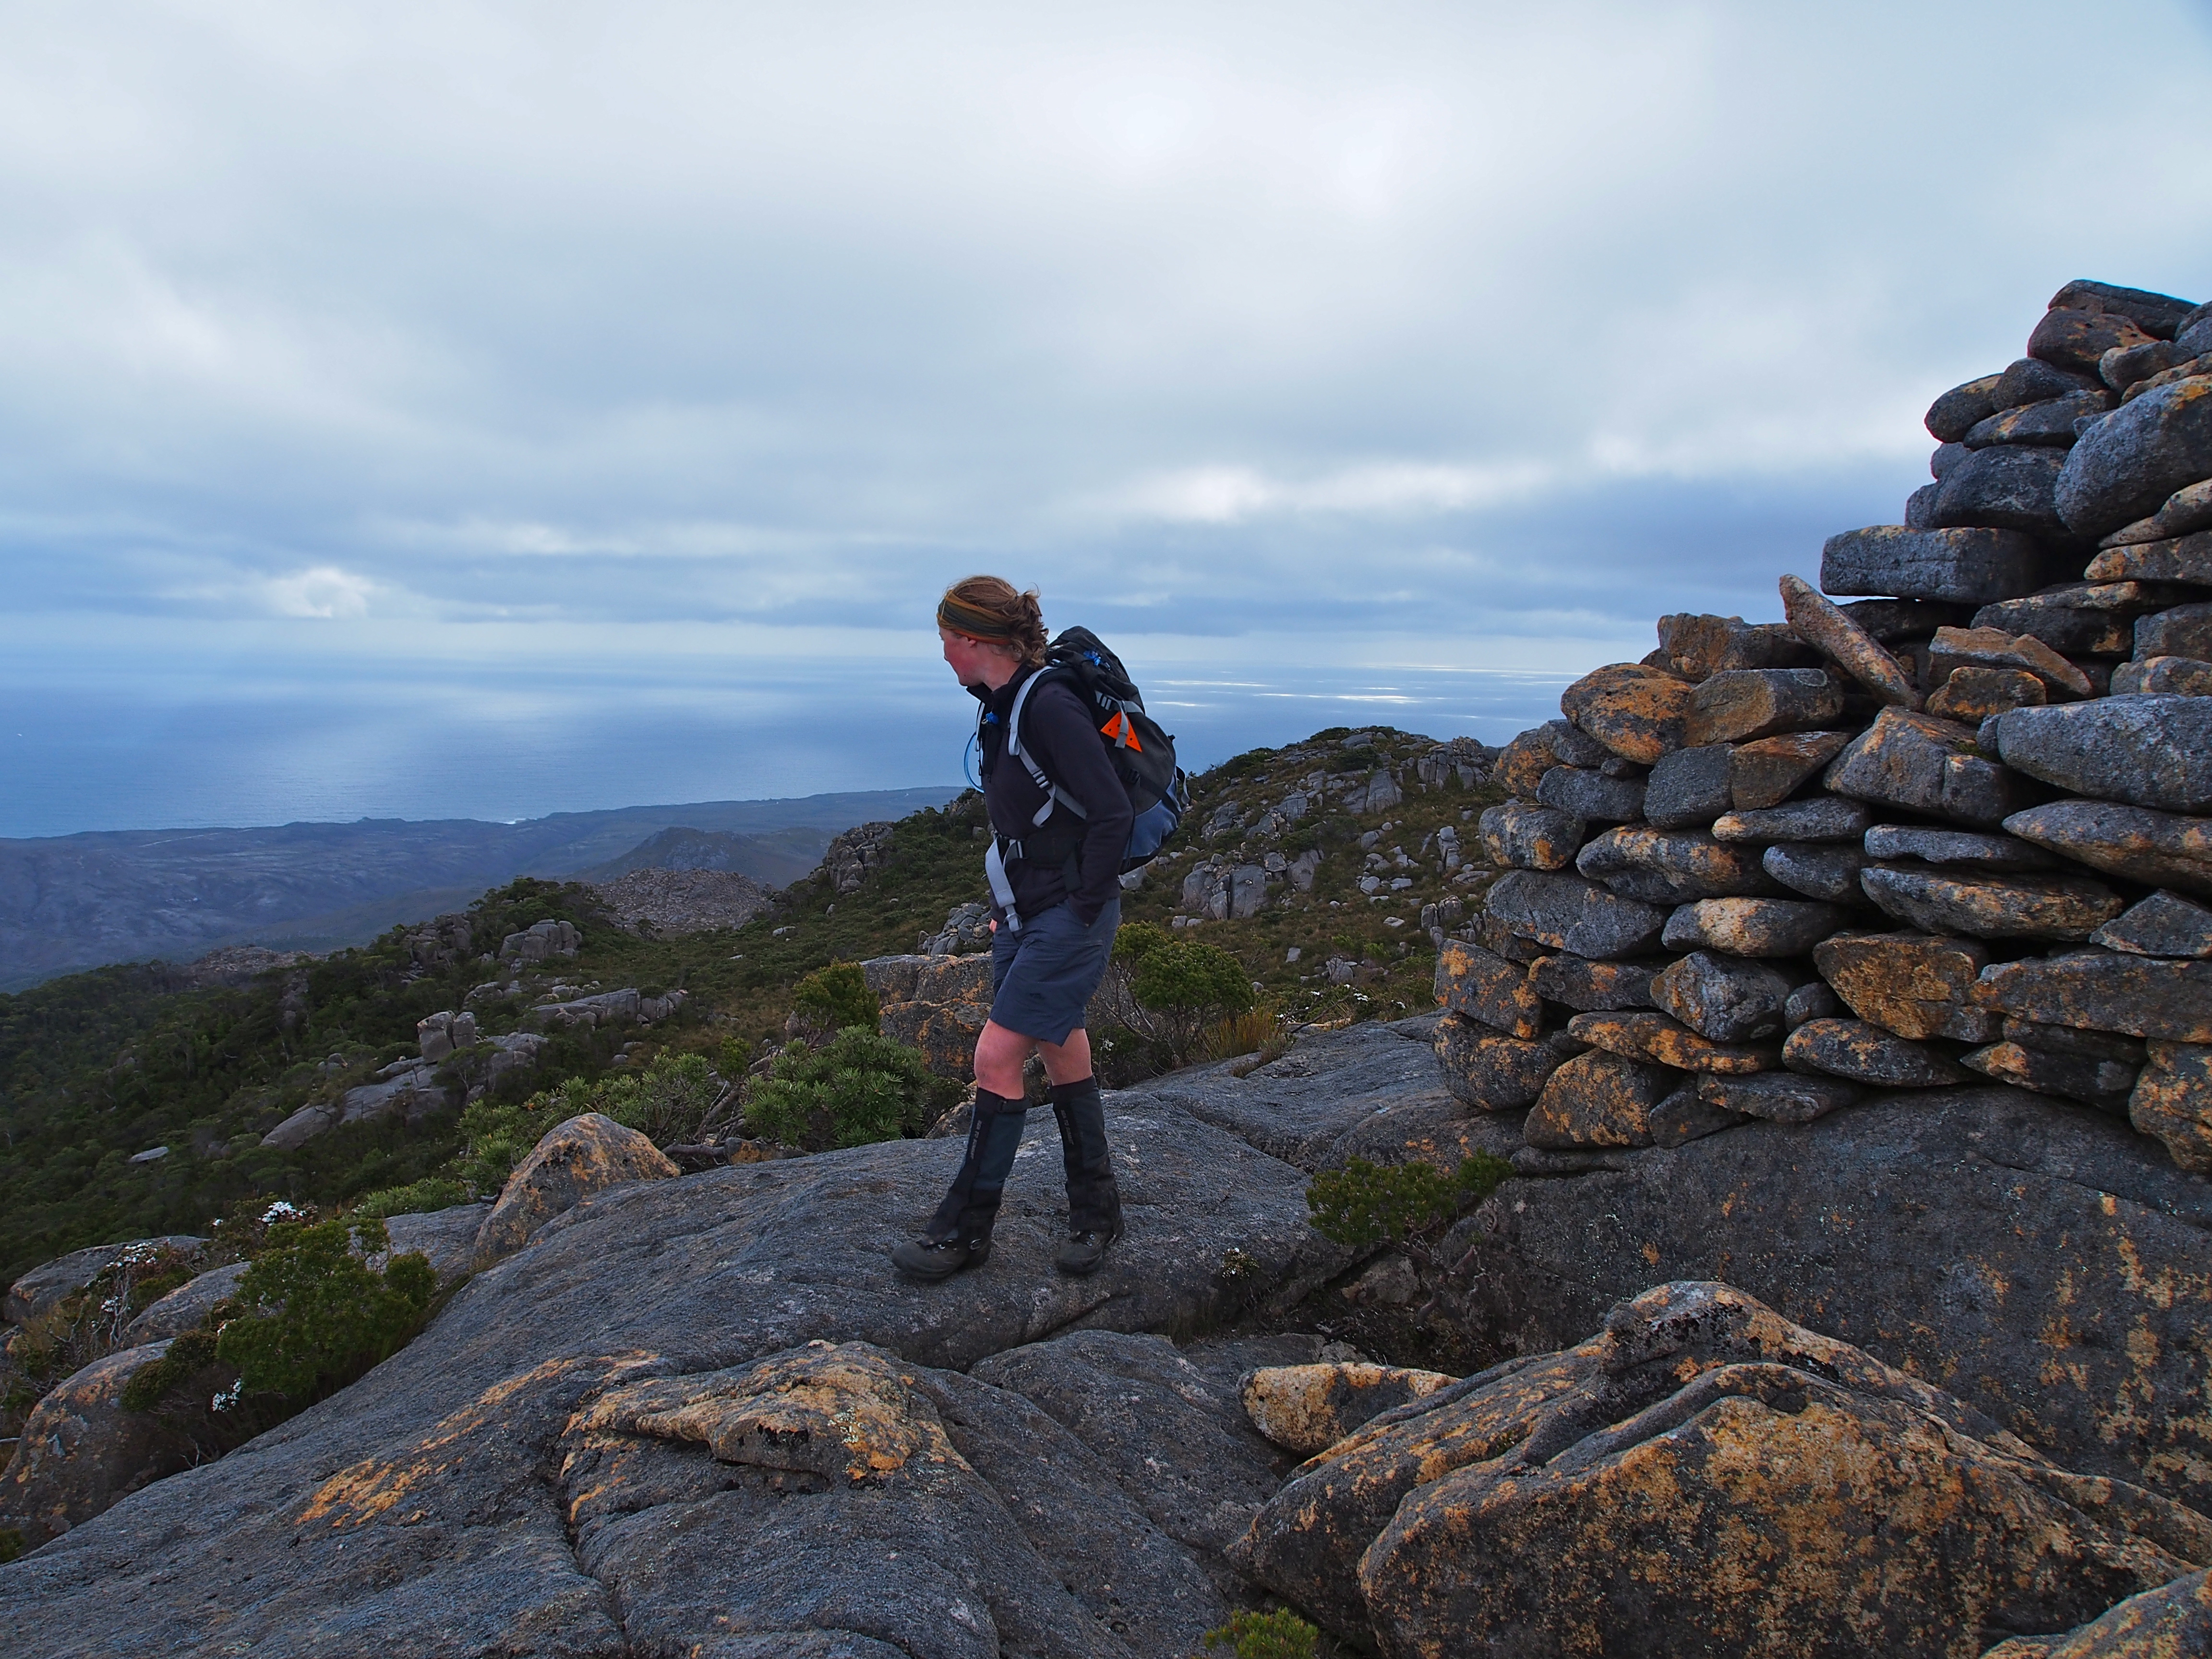 Lingering for a moment by the cairn, before moving to the true and unmarked summit